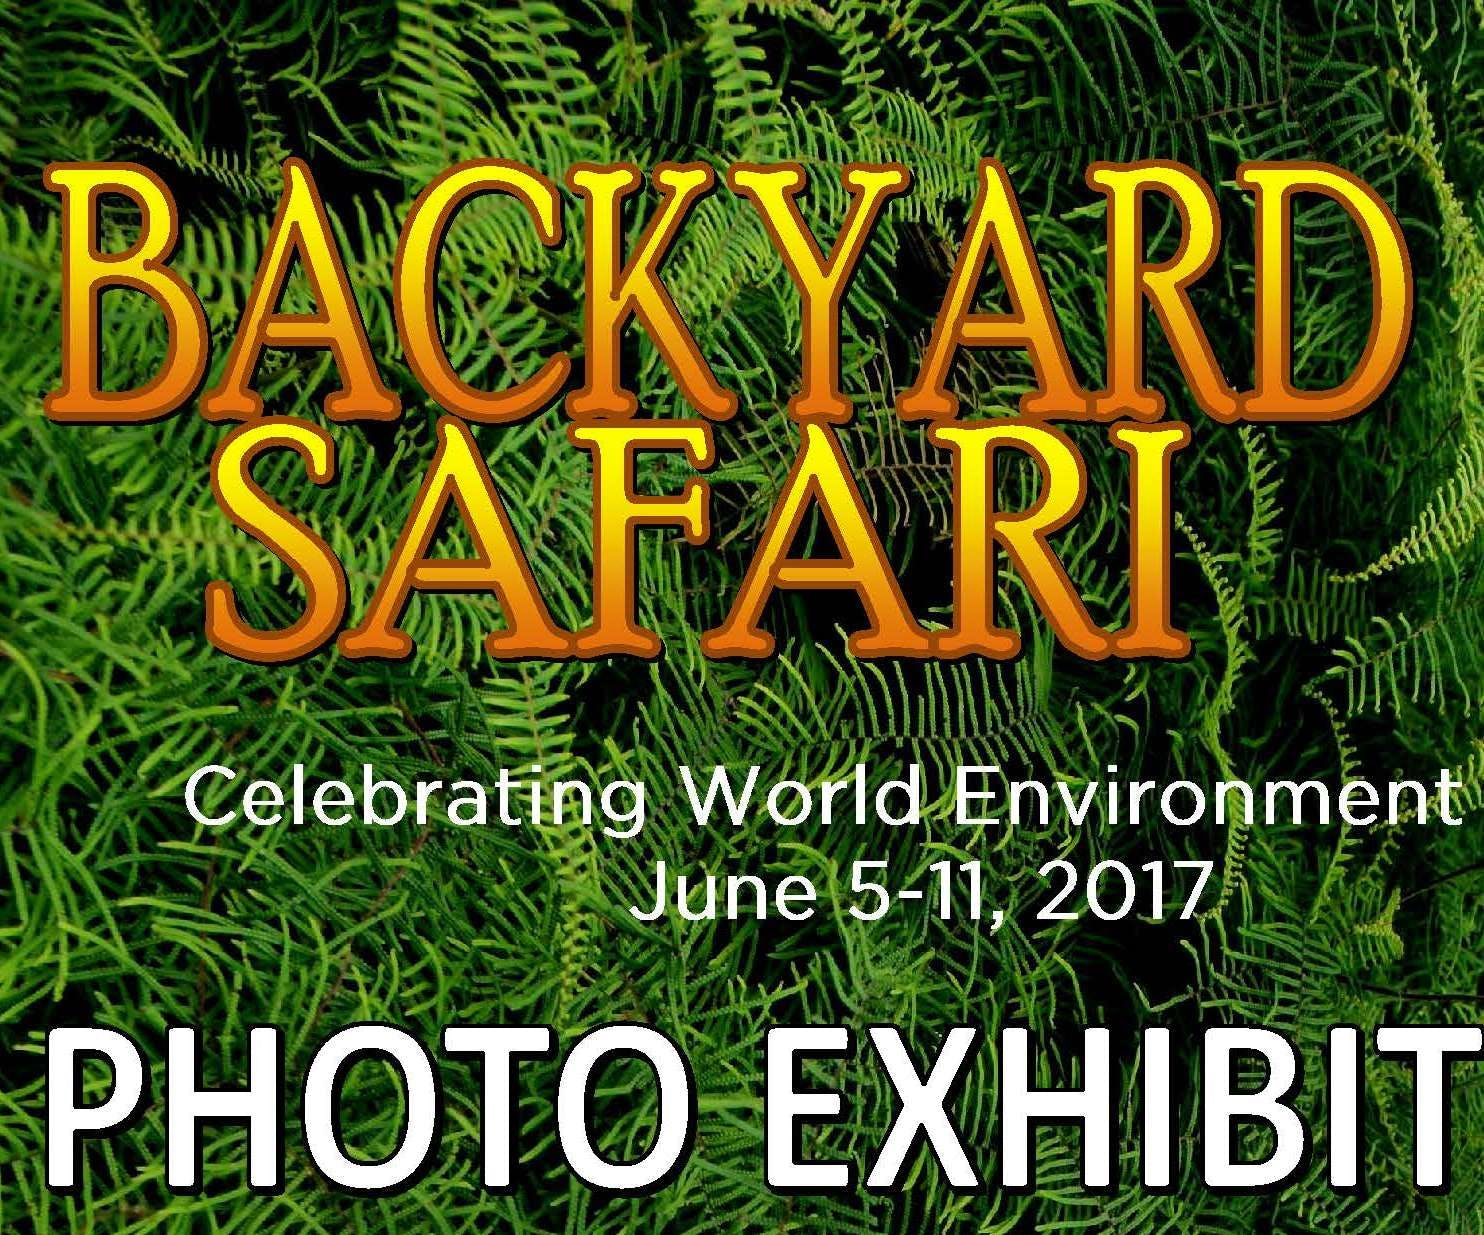 Photo exhibition during World Environment Week 2017